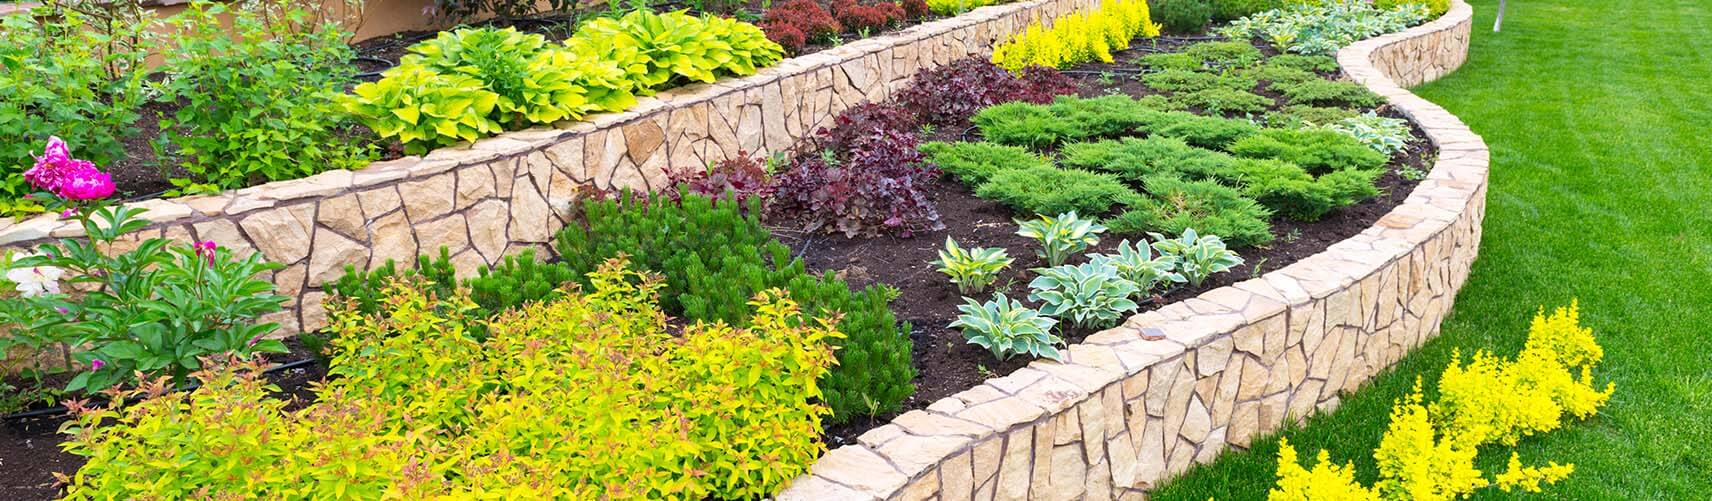 Huntingtown Landscaping Company, Landscaper and Landscaping Services